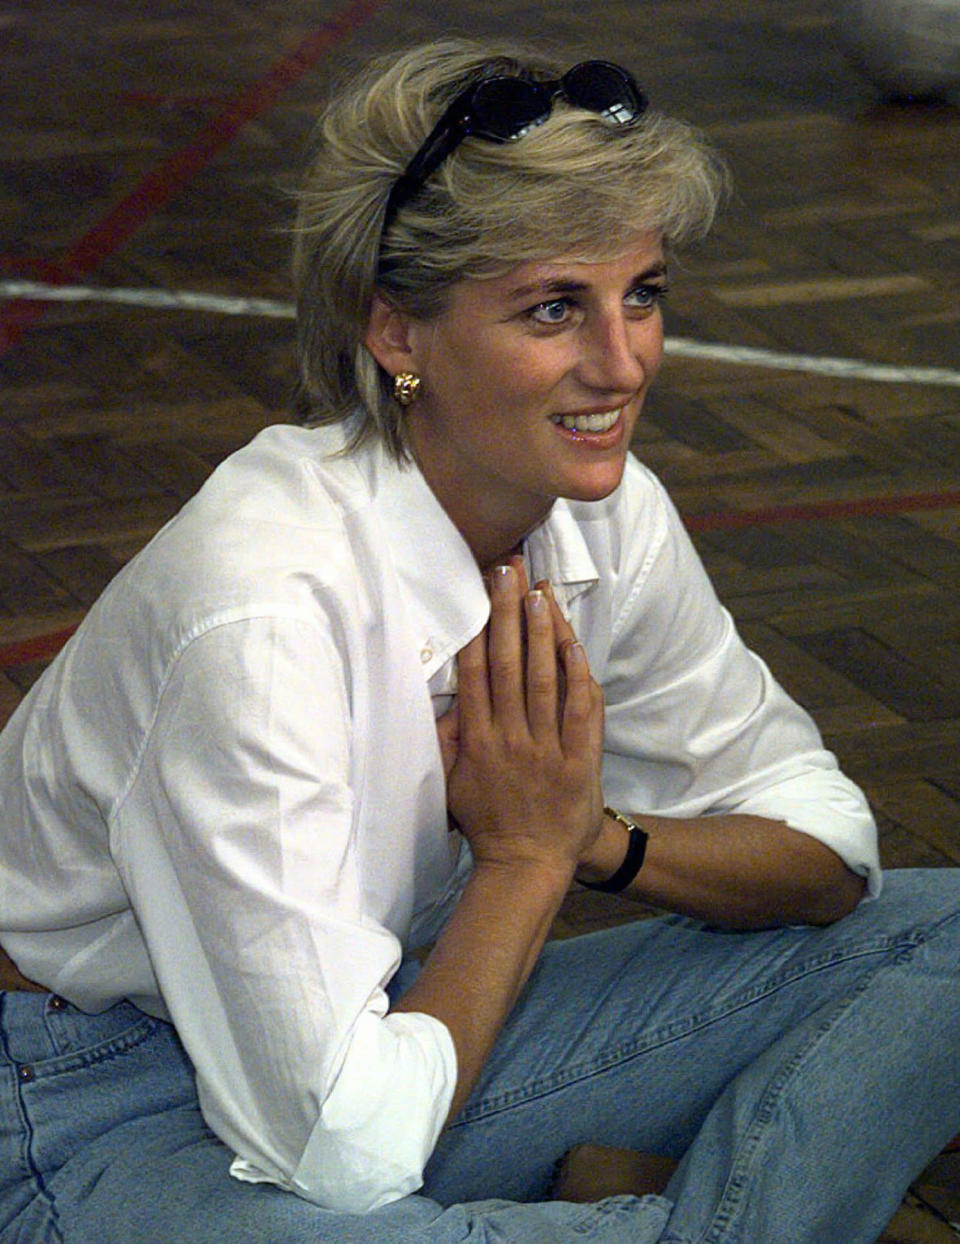 """FILE - In this Saturday, Aug. 9, 1997 file photo, Diana, Princess of Wales, sits and talks to members of a Zenica volleyball team who have suffered injuries from mines, during her visit to Zenica, Bosnia. For someone who began her life in the spotlight as """"Shy Di,"""" Princess Diana became an unlikely, revolutionary during her years in the House of Windsor. She helped modernize the monarchy by making it more personal, changing the way the royal family related to people. By interacting more intimately with the public -- kneeling to the level of children, sitting on edge of a patient's hospital bed, writing personal notes to her fans -- she set an example that has been followed by other royals as the monarchy worked to become more human and remain relevant in the 21st century. (Ian Waldie/Pool via AP, File)"""